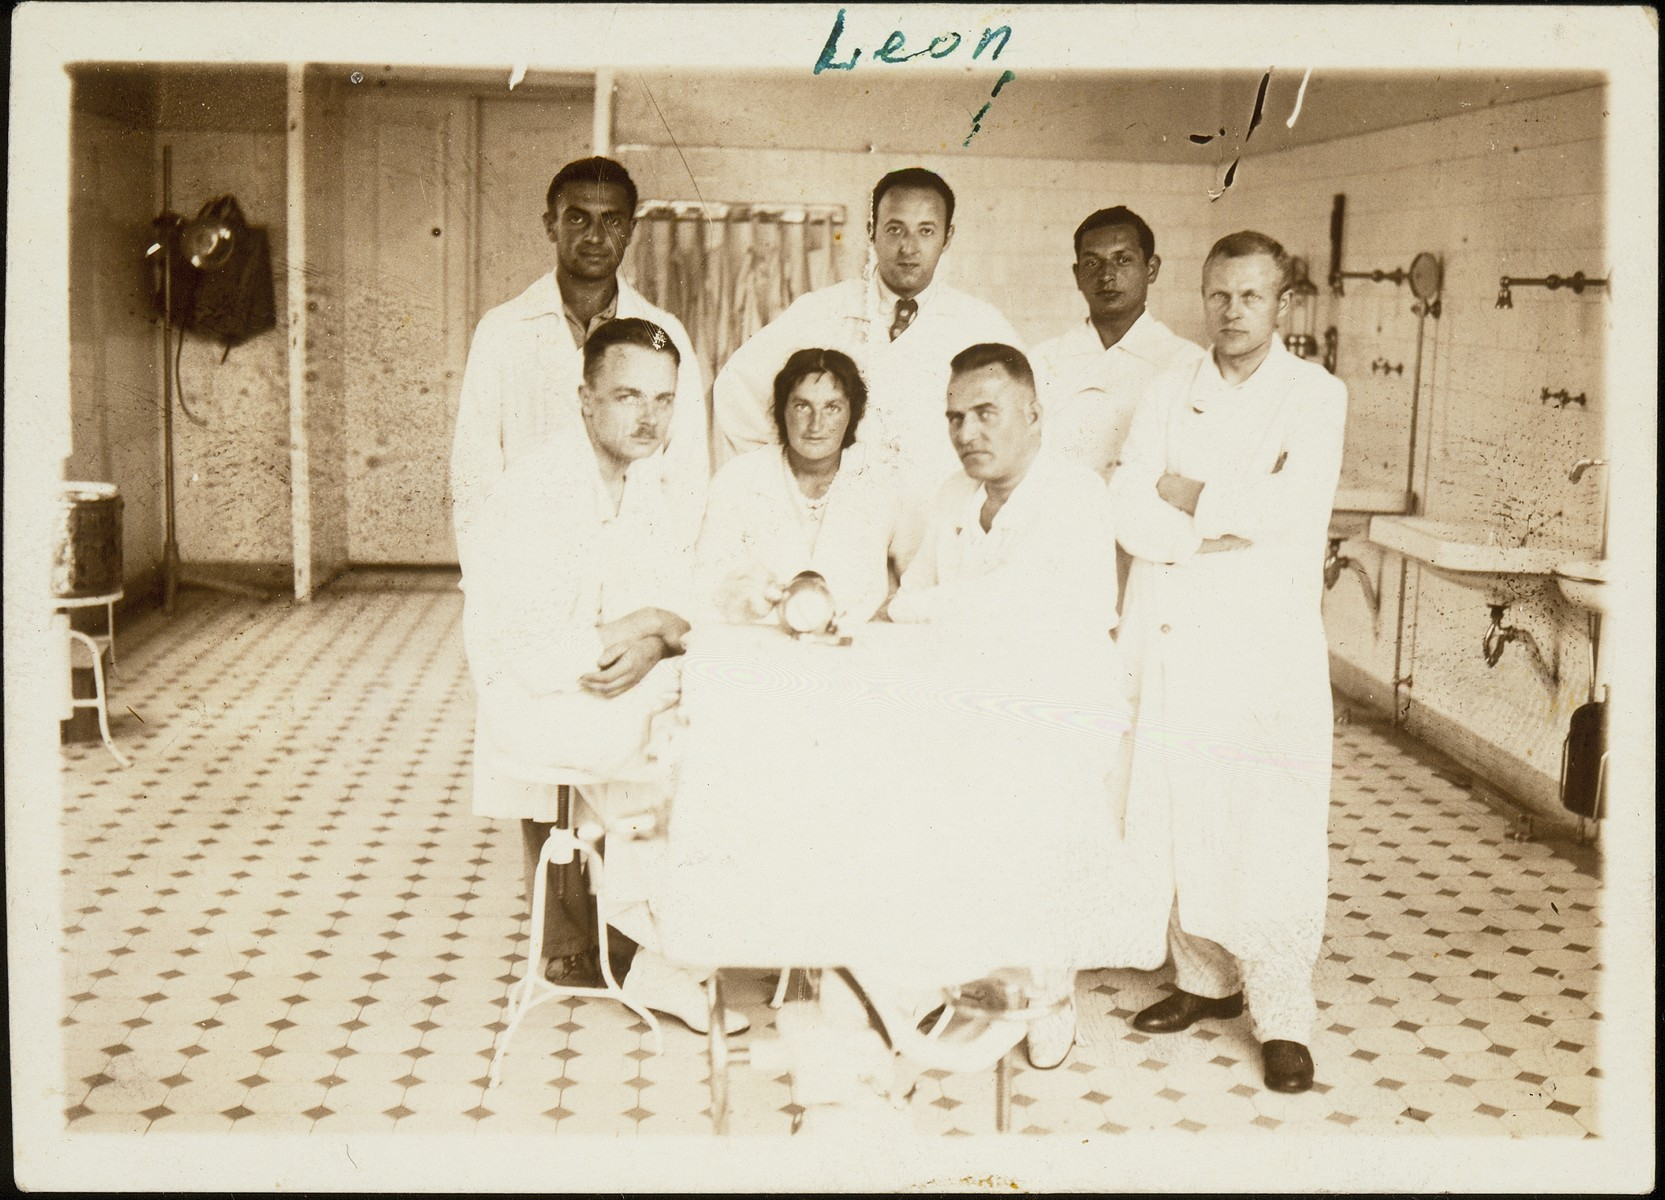 Dr. Leon Gordon (standing in the back, second from left) poses with a group of other medical personal at the surgical clinic in Vilna.  Dr. Leon Gordon served as a doctor in the Vilna ghetto and probably was murdered in Ponar.